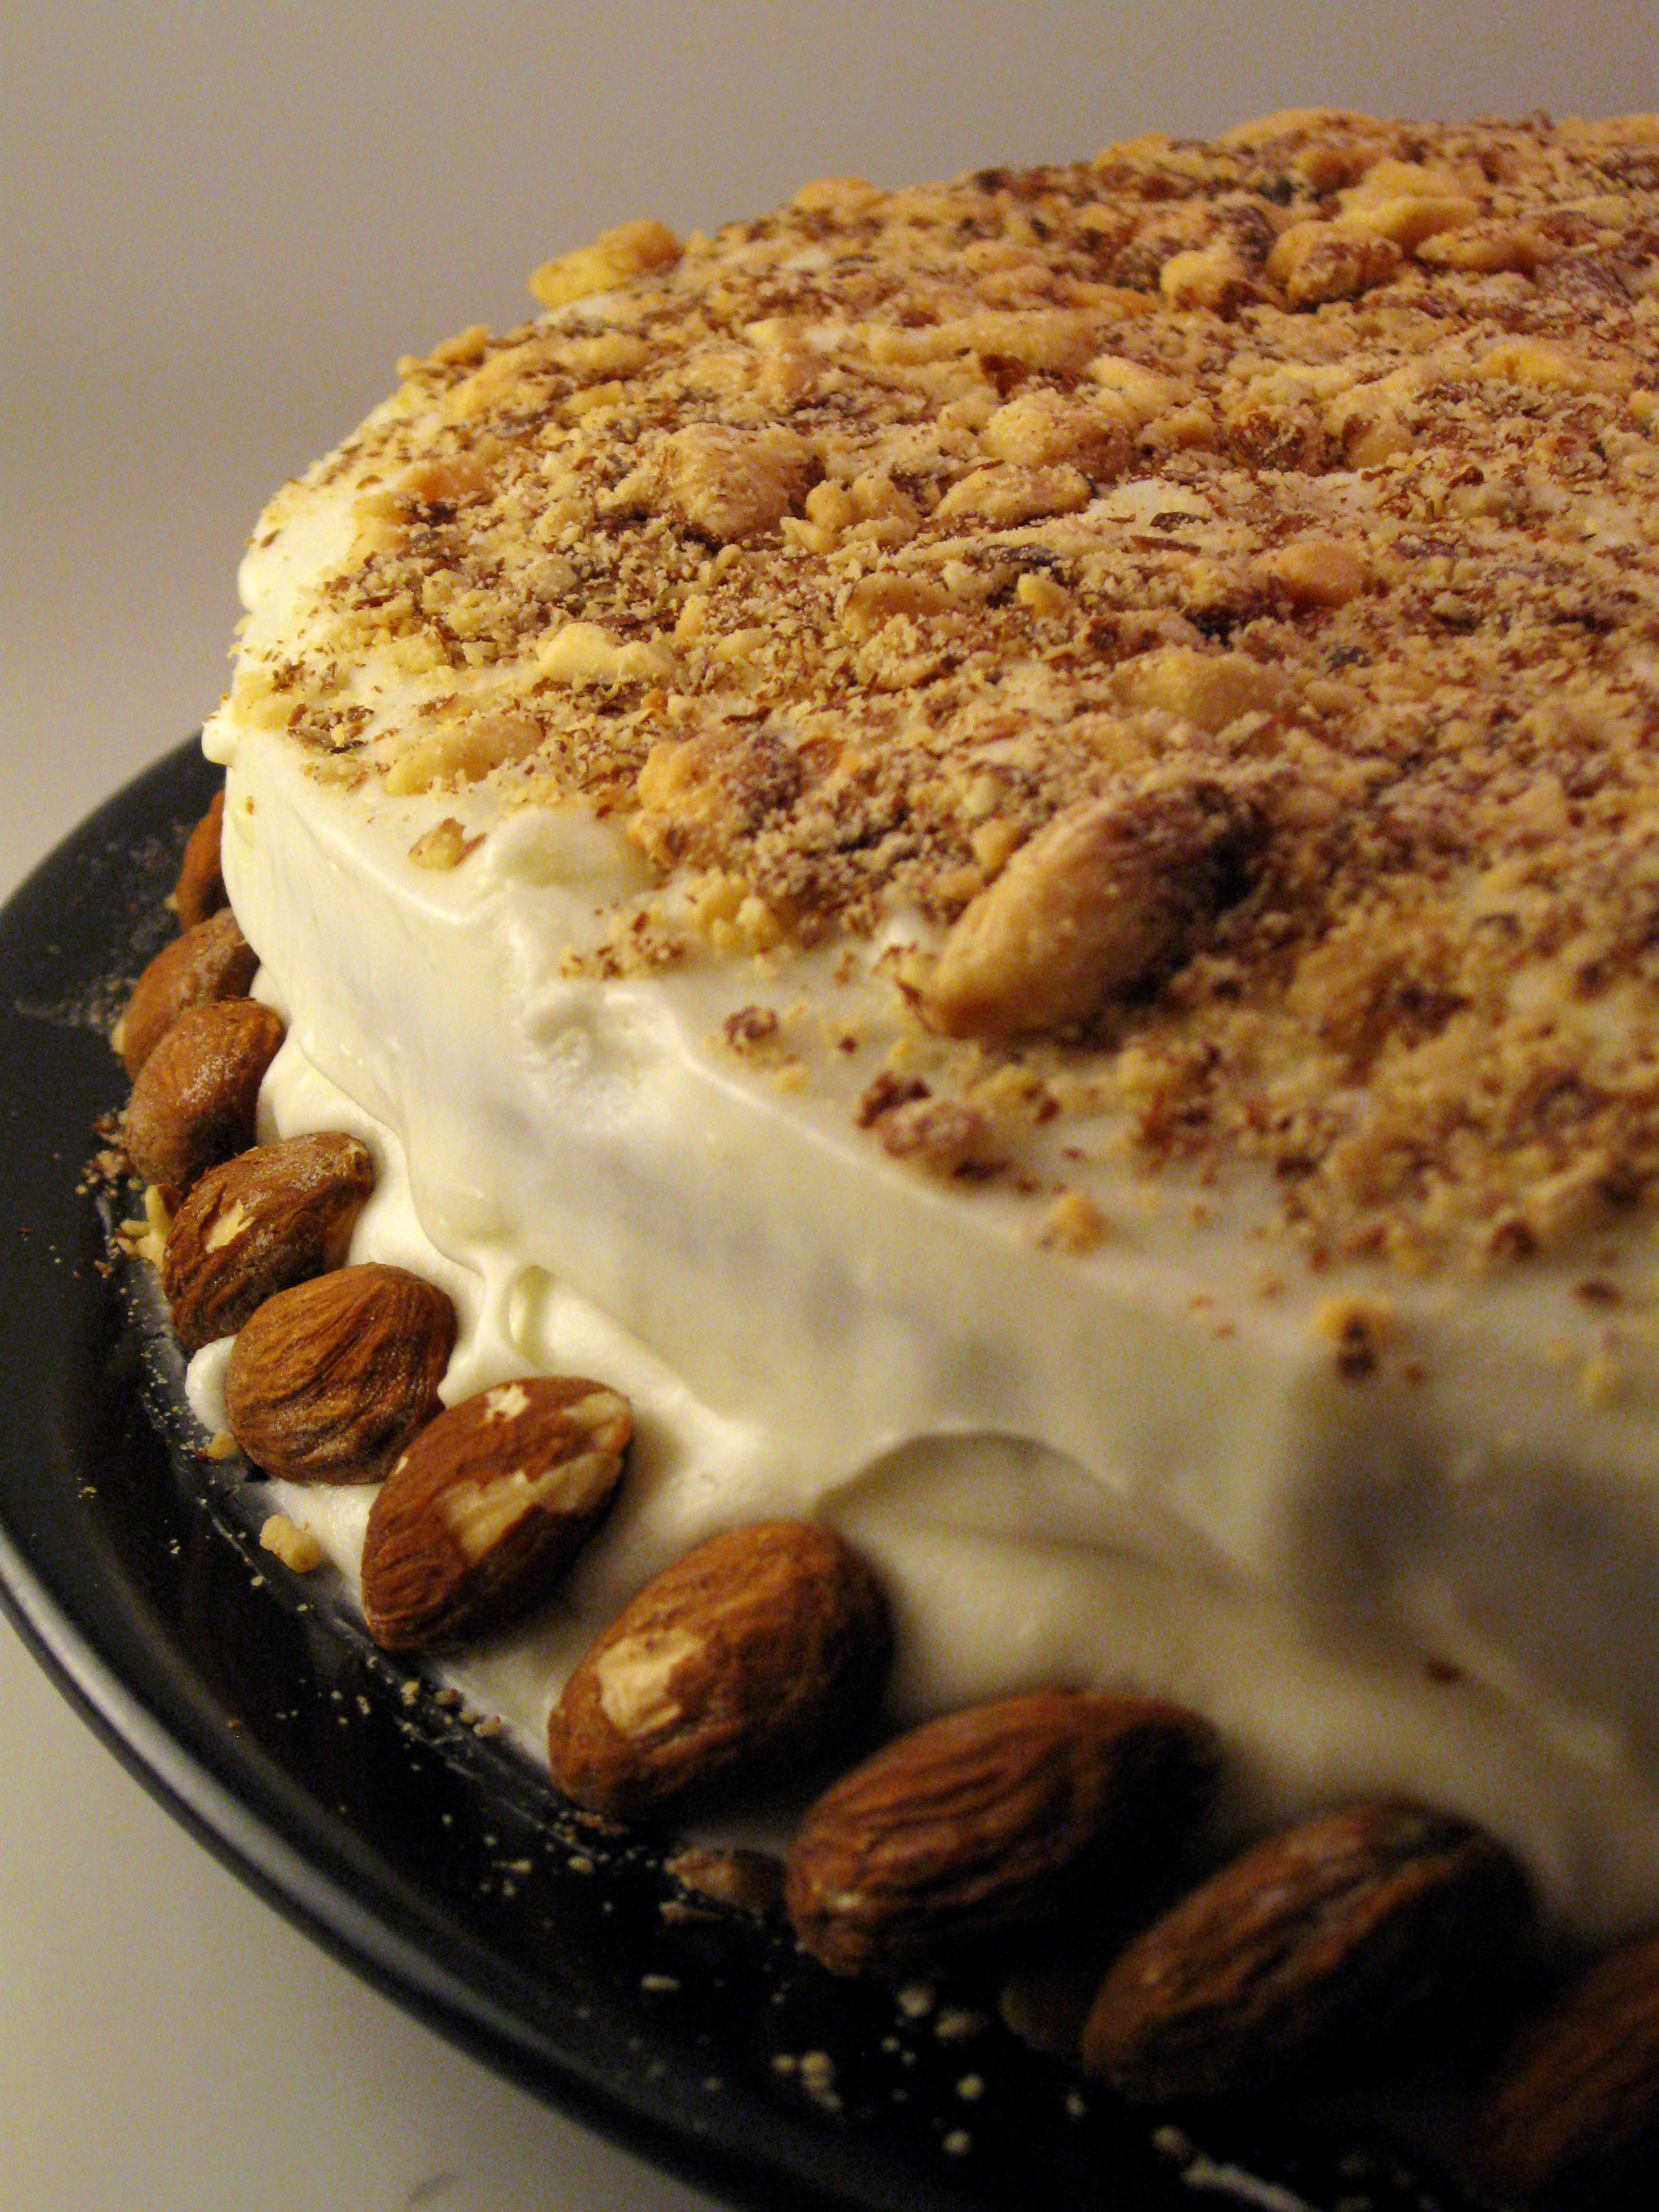 File:Pumpkin spice cake with almonds.jpg - Wikimedia Commons